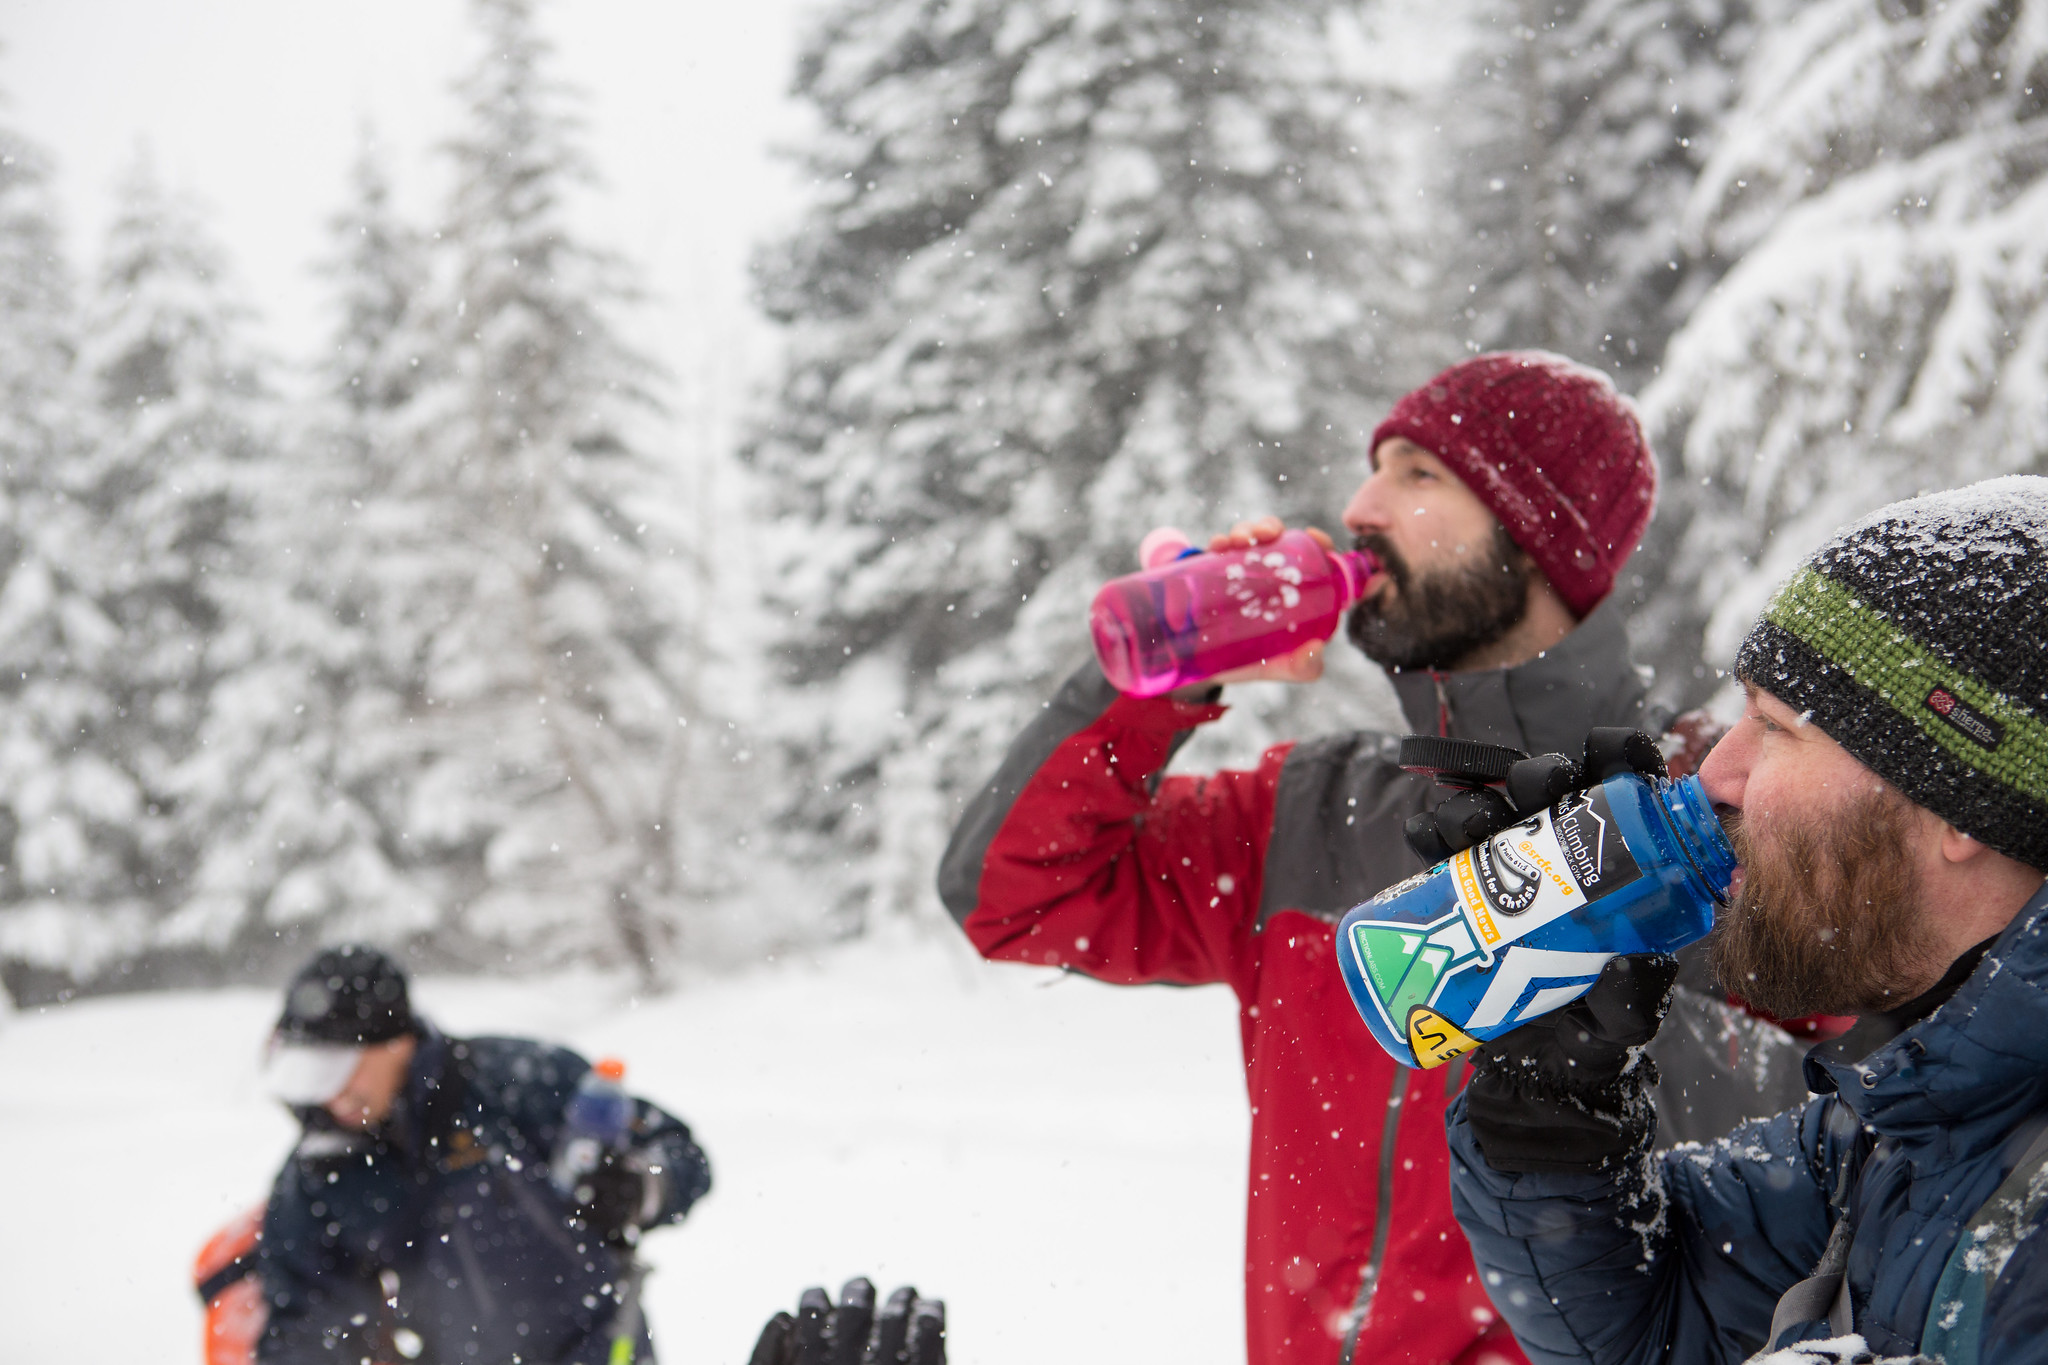 Participants in an Outdoor Leadership Training snowshoeing course stop for water. Photo by Emma Cassidy.